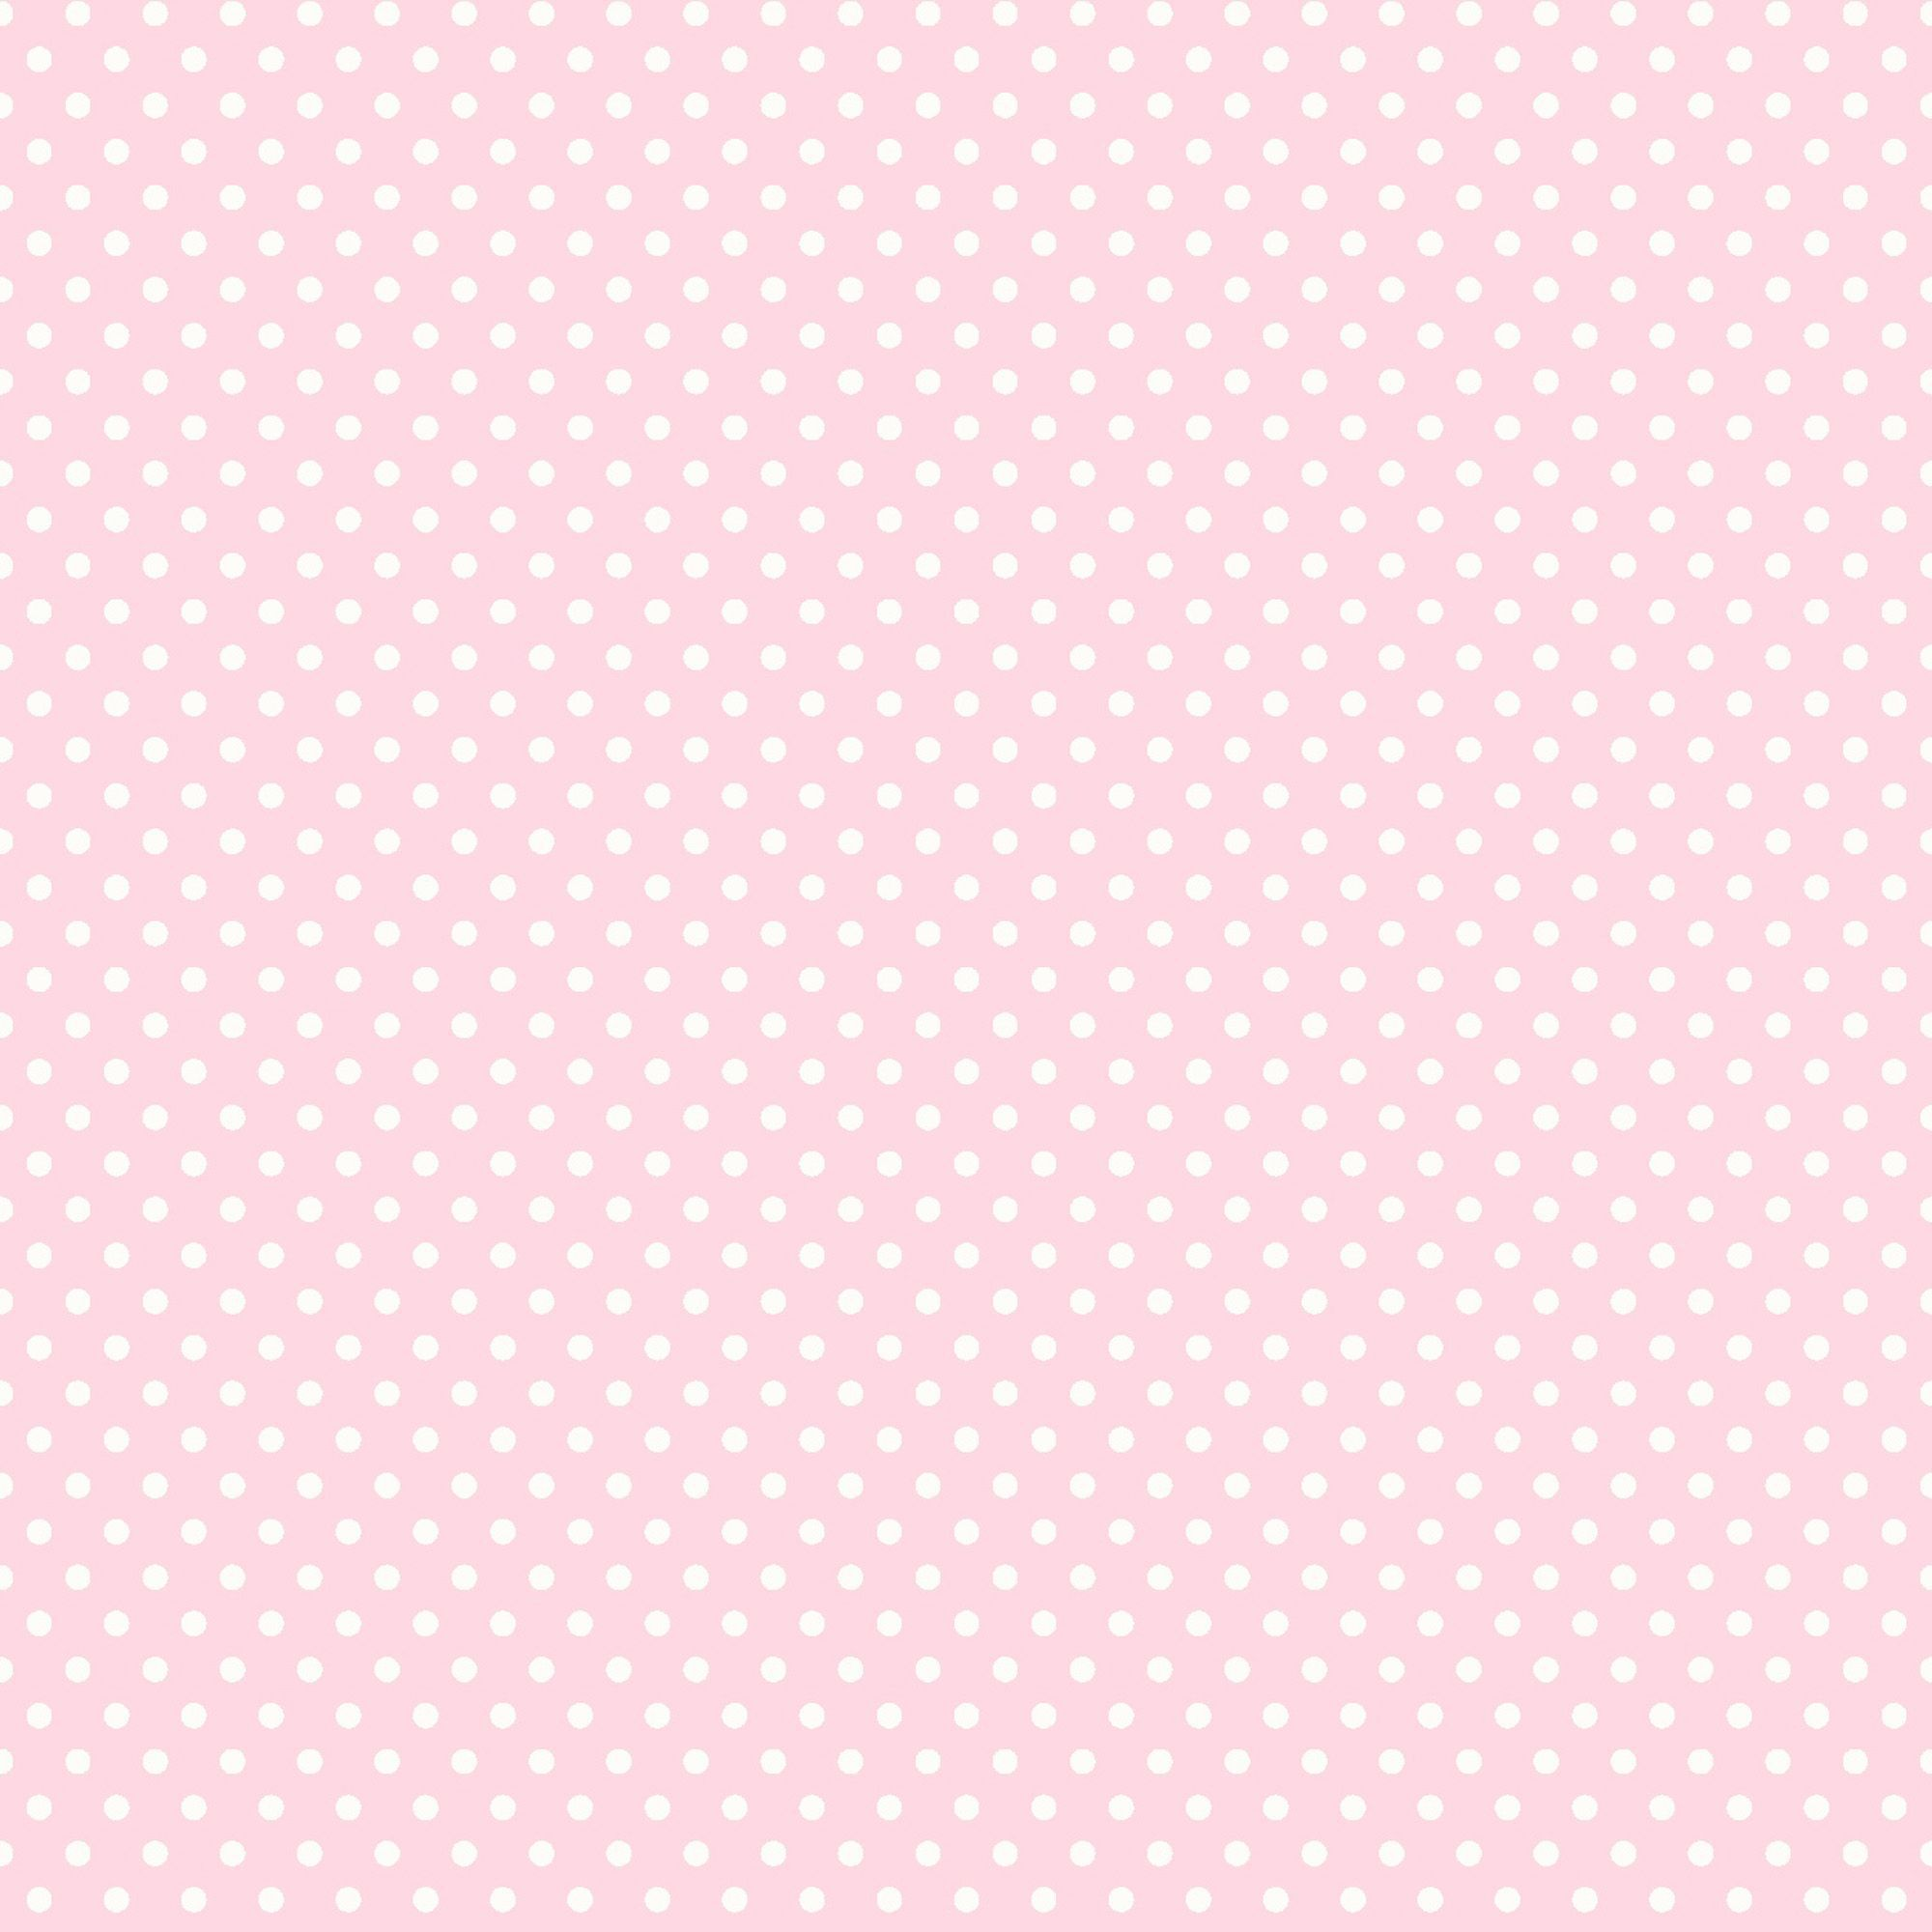 Holden dcor pink white polka dots wallpaper departments diy holden dcor pink white polka dots wallpaper departments diy at bq voltagebd Images